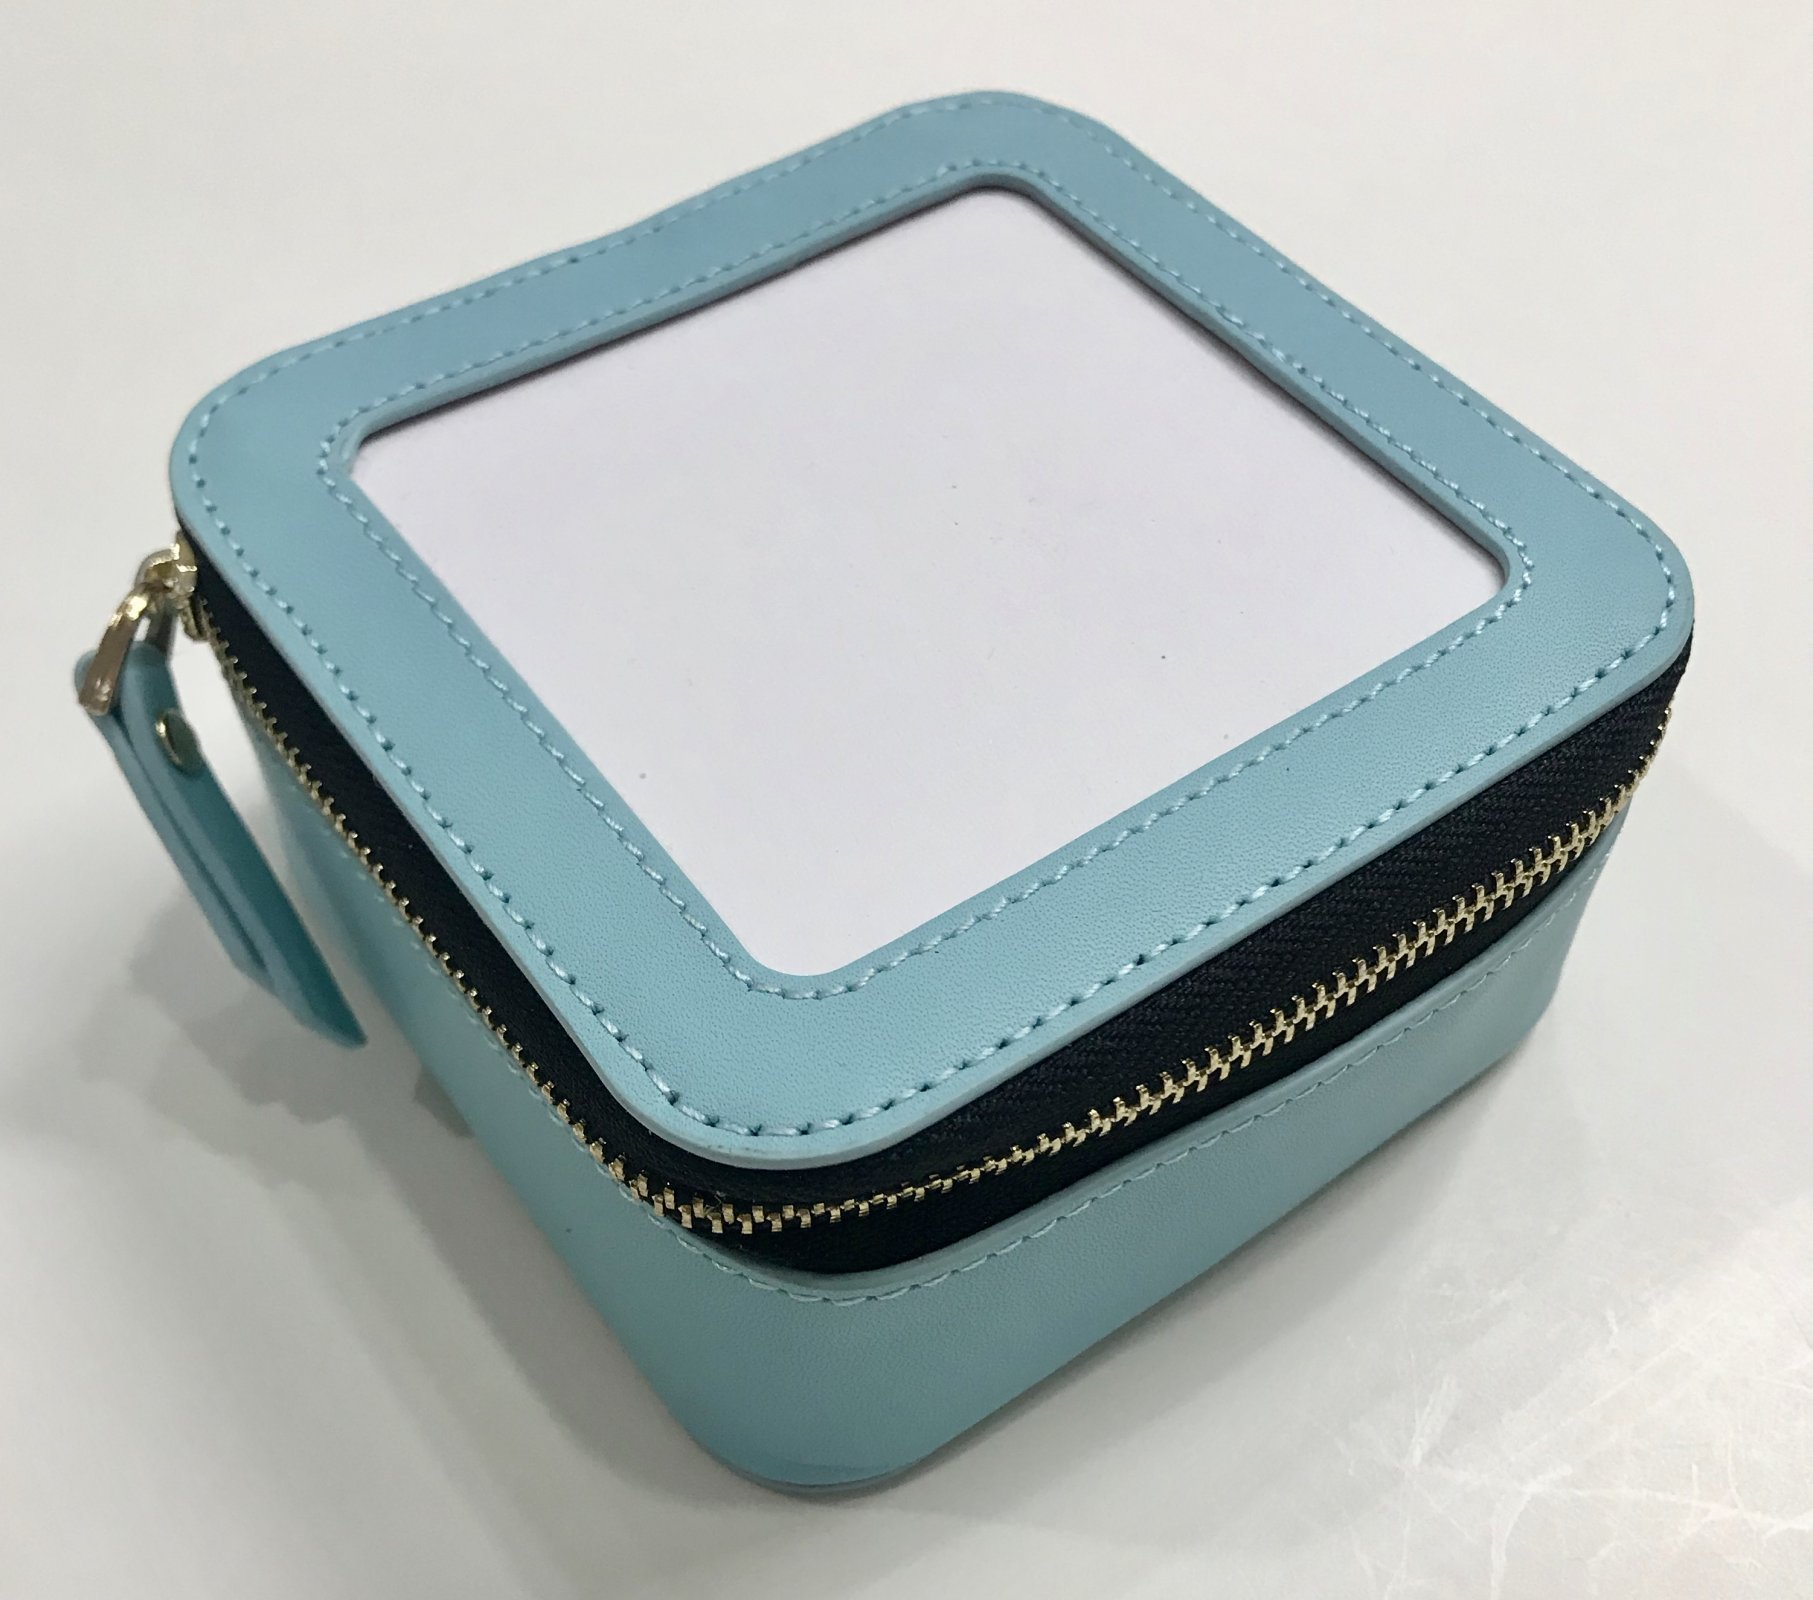 Square Jewelry Case - Aqua